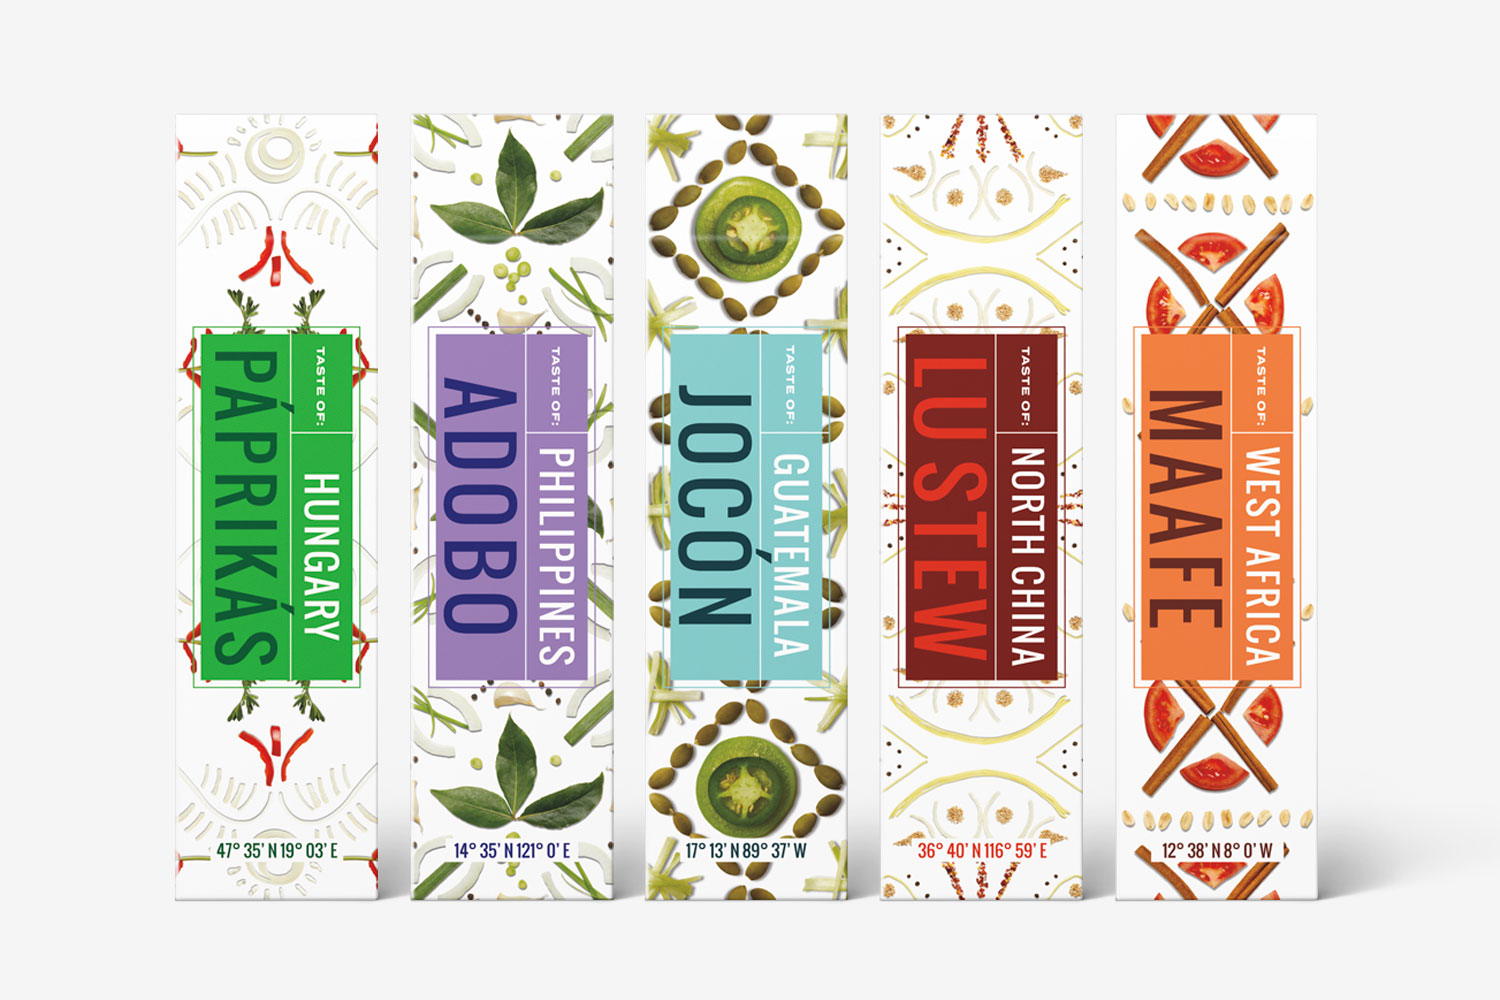 Fernway Brand Identity and Packaging Design